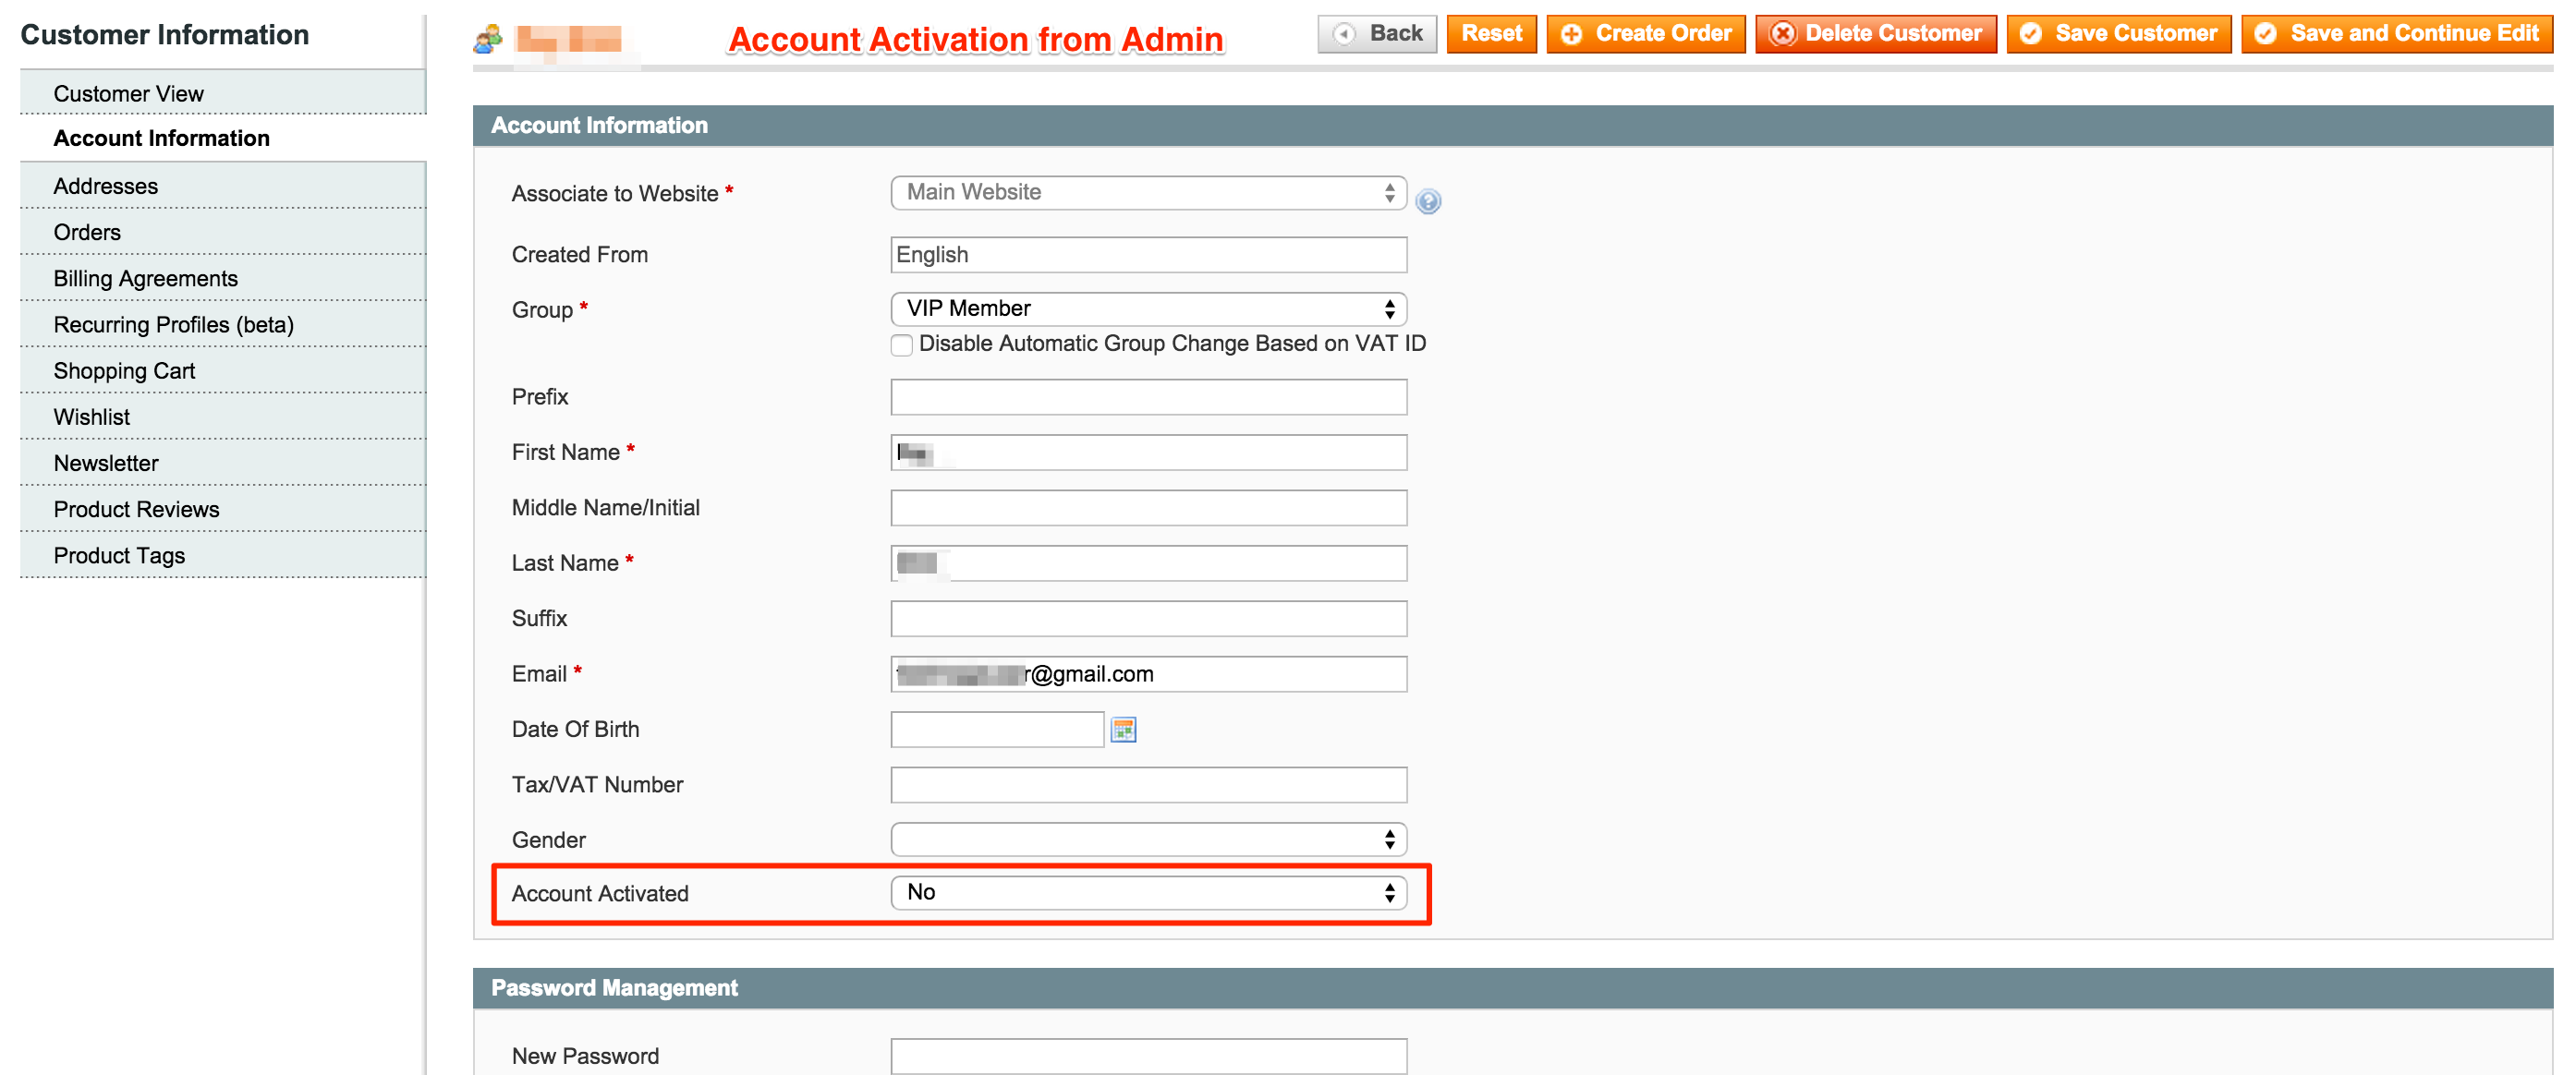 Customer account create/ - Account Activation Approval By Admin Customer Edit Page